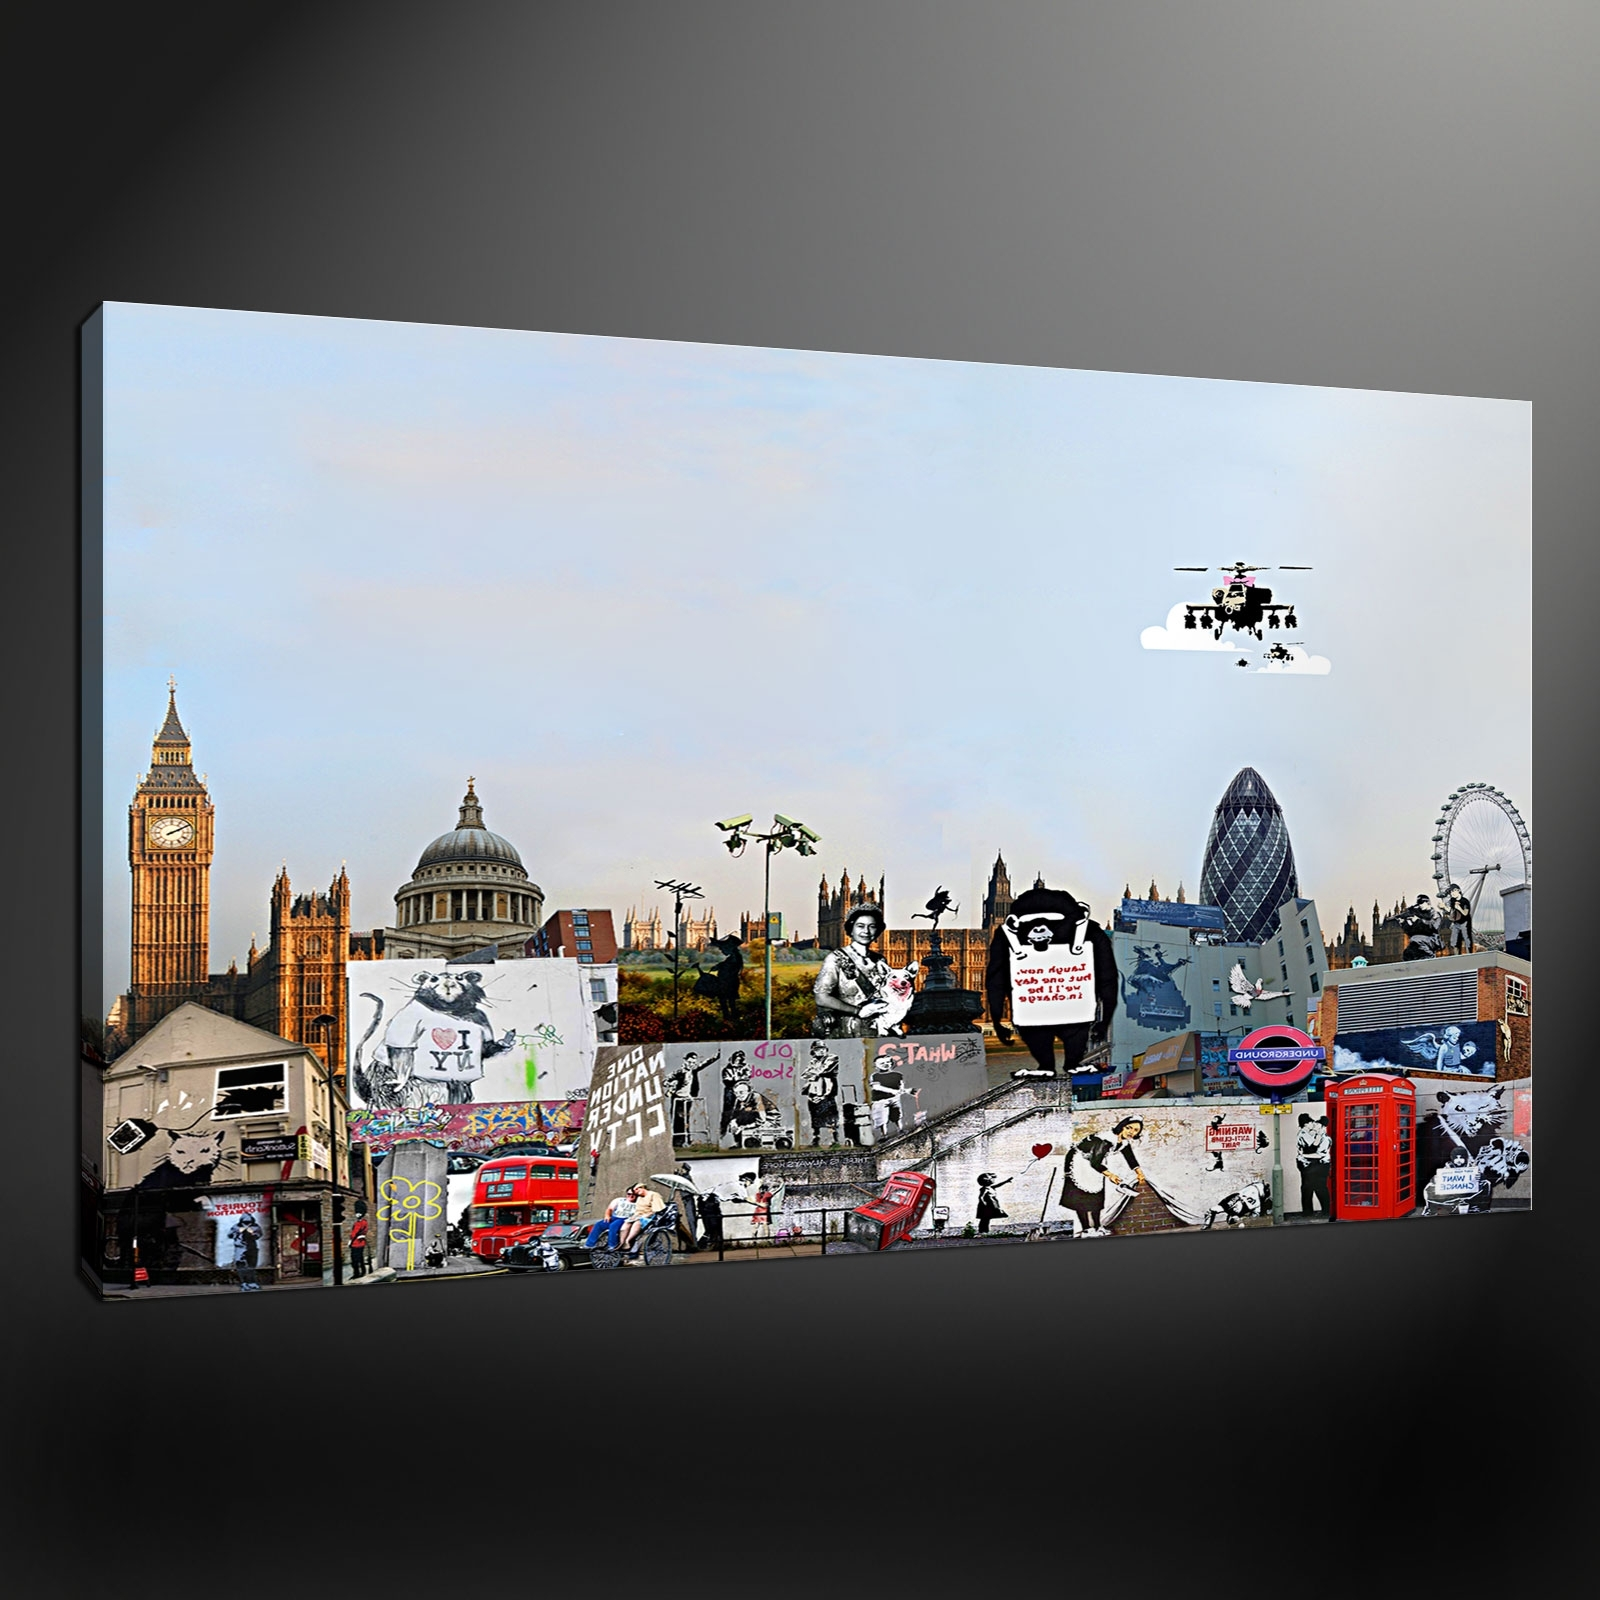 Collection Canvas Print Picture Wall Art Throughout Most Up To Date Banksy Wall Art Canvas (View 9 of 15)